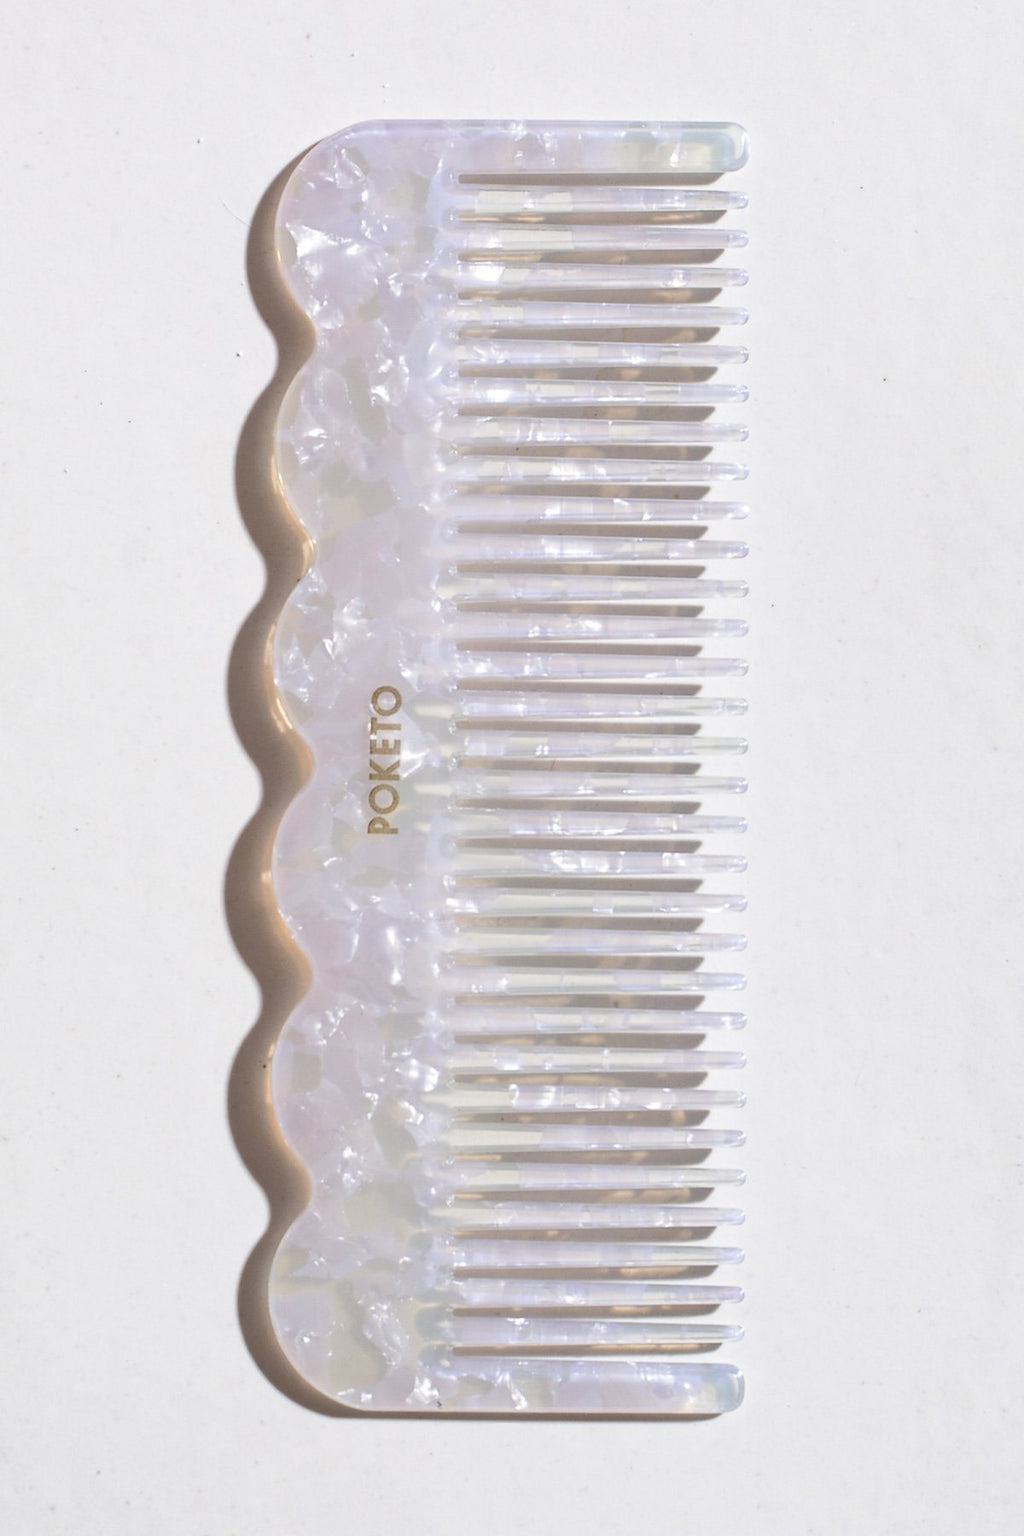 Casa Cuadra Objects Poketo Wave Comb - Pearlescent